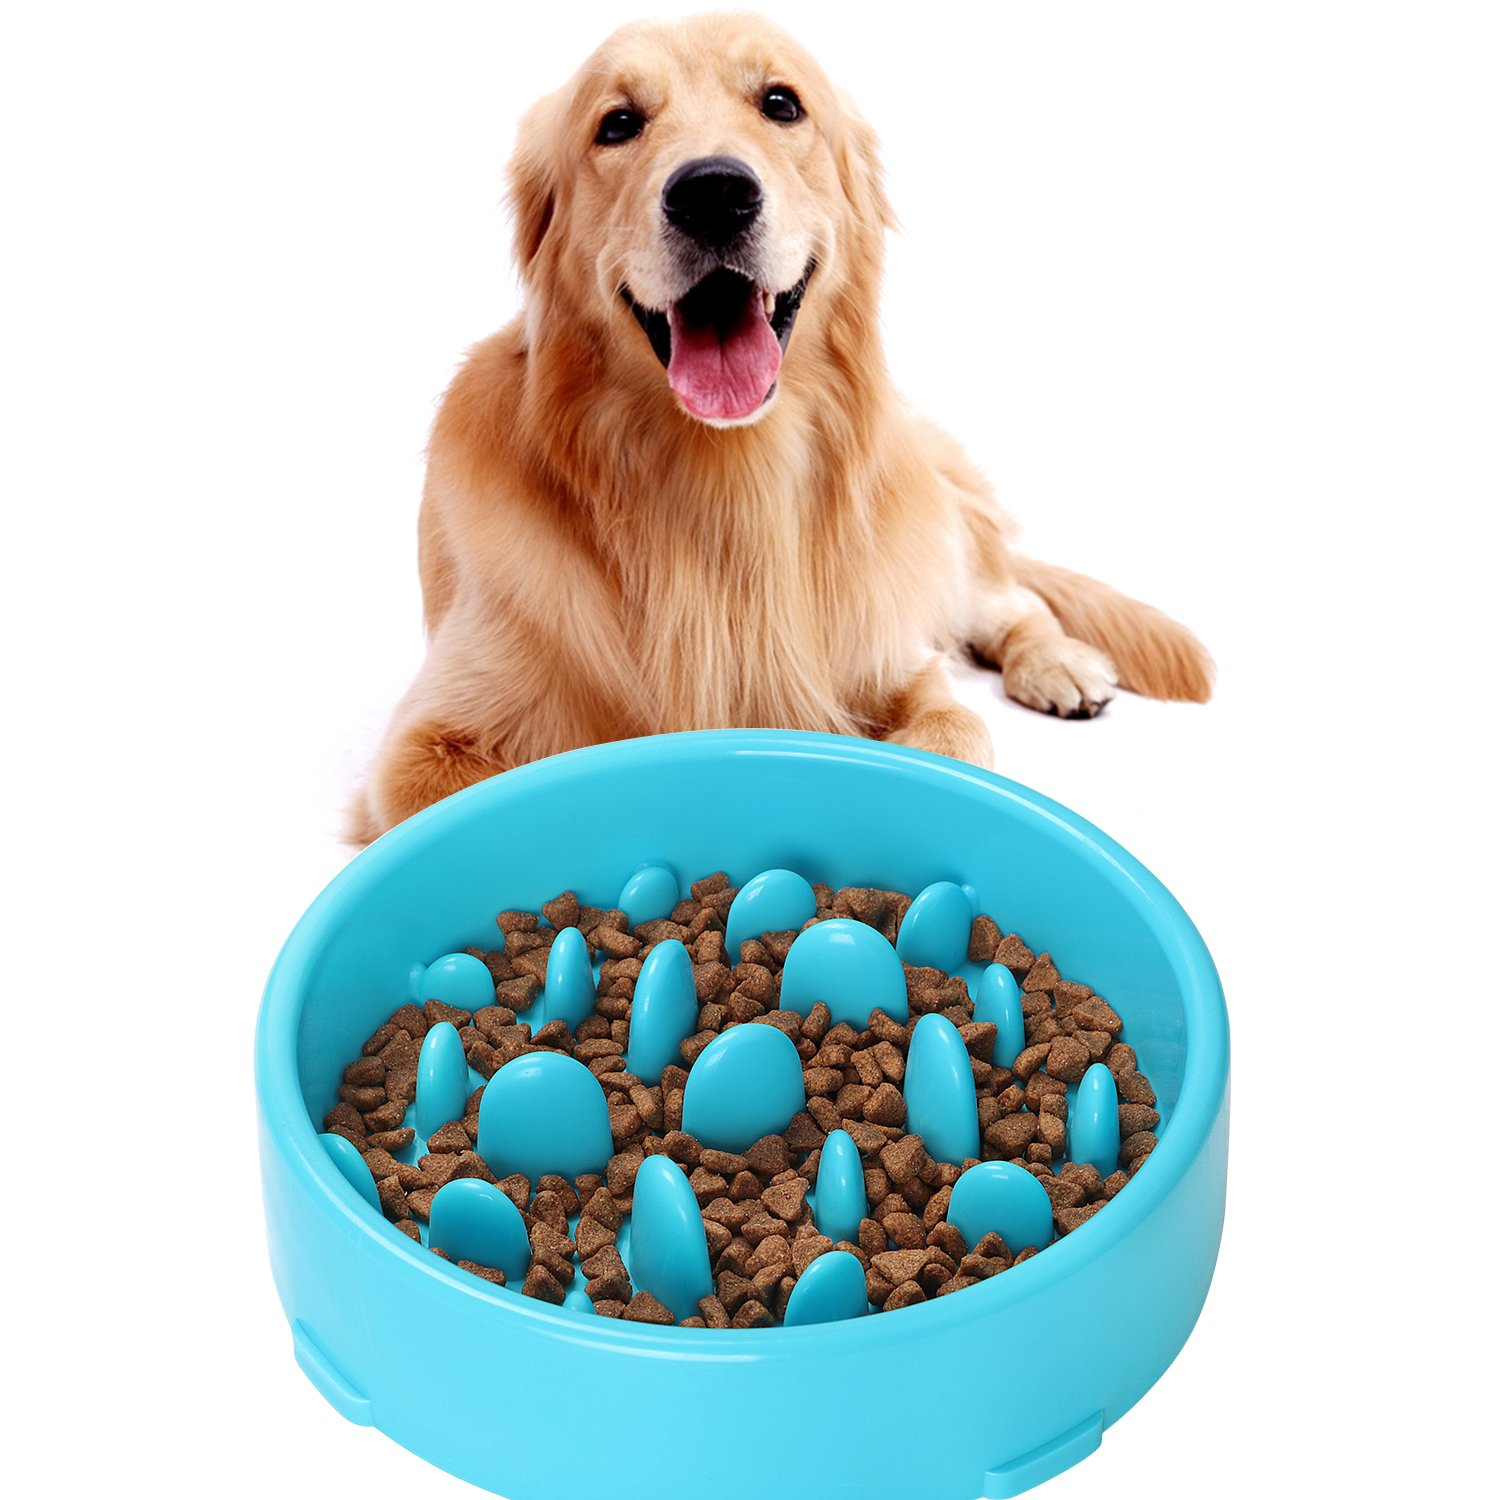 JASGOOD Slow Feeder Dog Bowl New Arriving Fun Feeder Slow Feeding Interactive Bloat Stop Dog Bowls